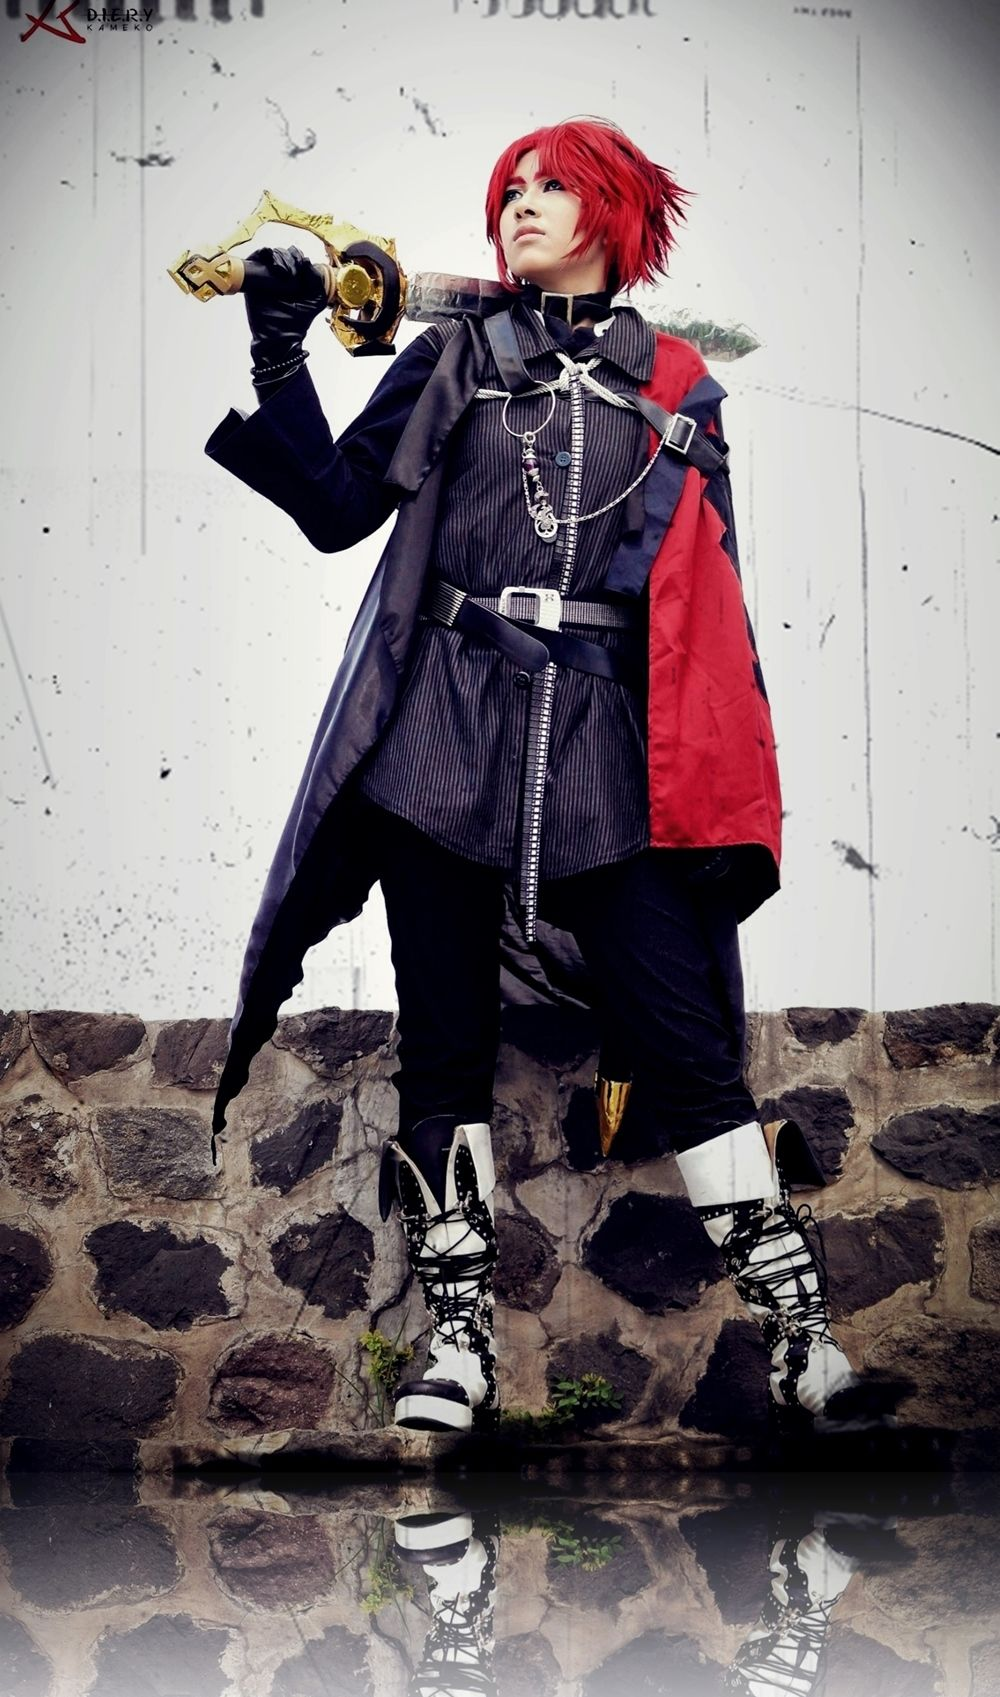 Crowley knight of crusades indi realkei crowley eusford free website for submitting cosplay photos and is used by cosplayers in countries all around the world even if youre not a cosplayer yourself you can solutioingenieria Gallery